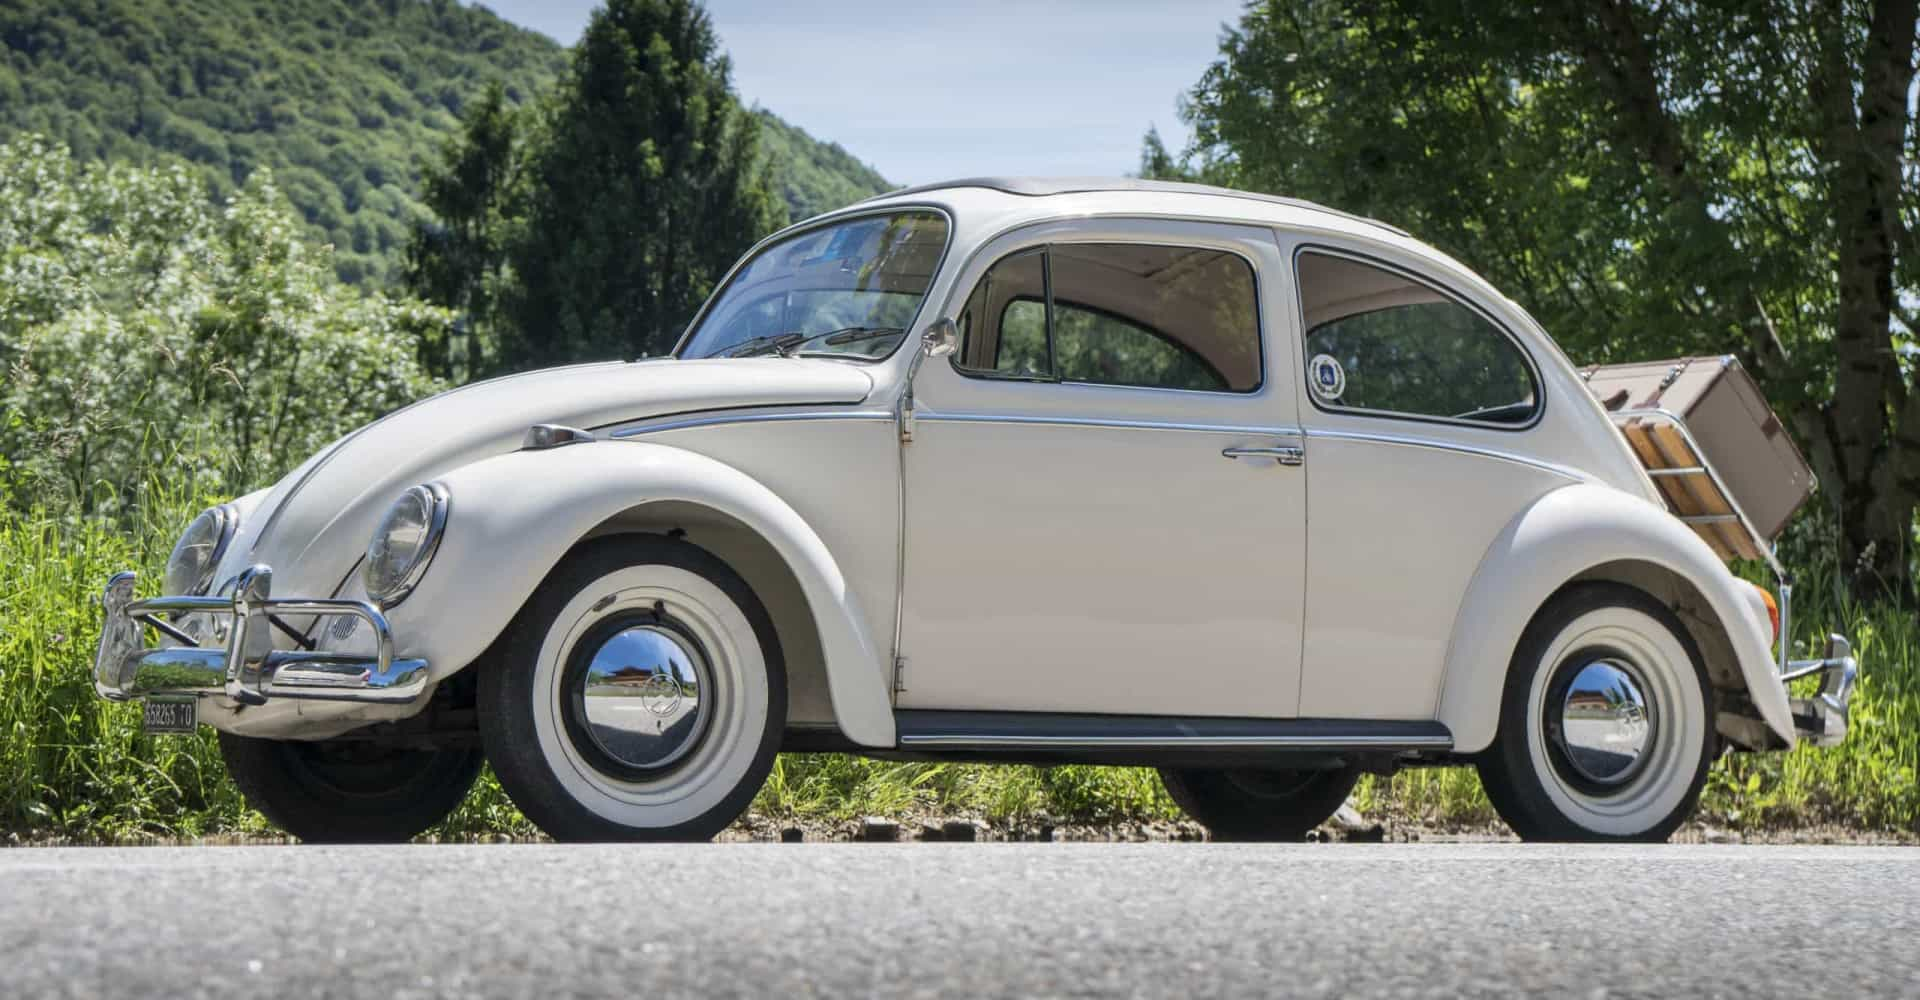 It's the end of the road for the Beetle